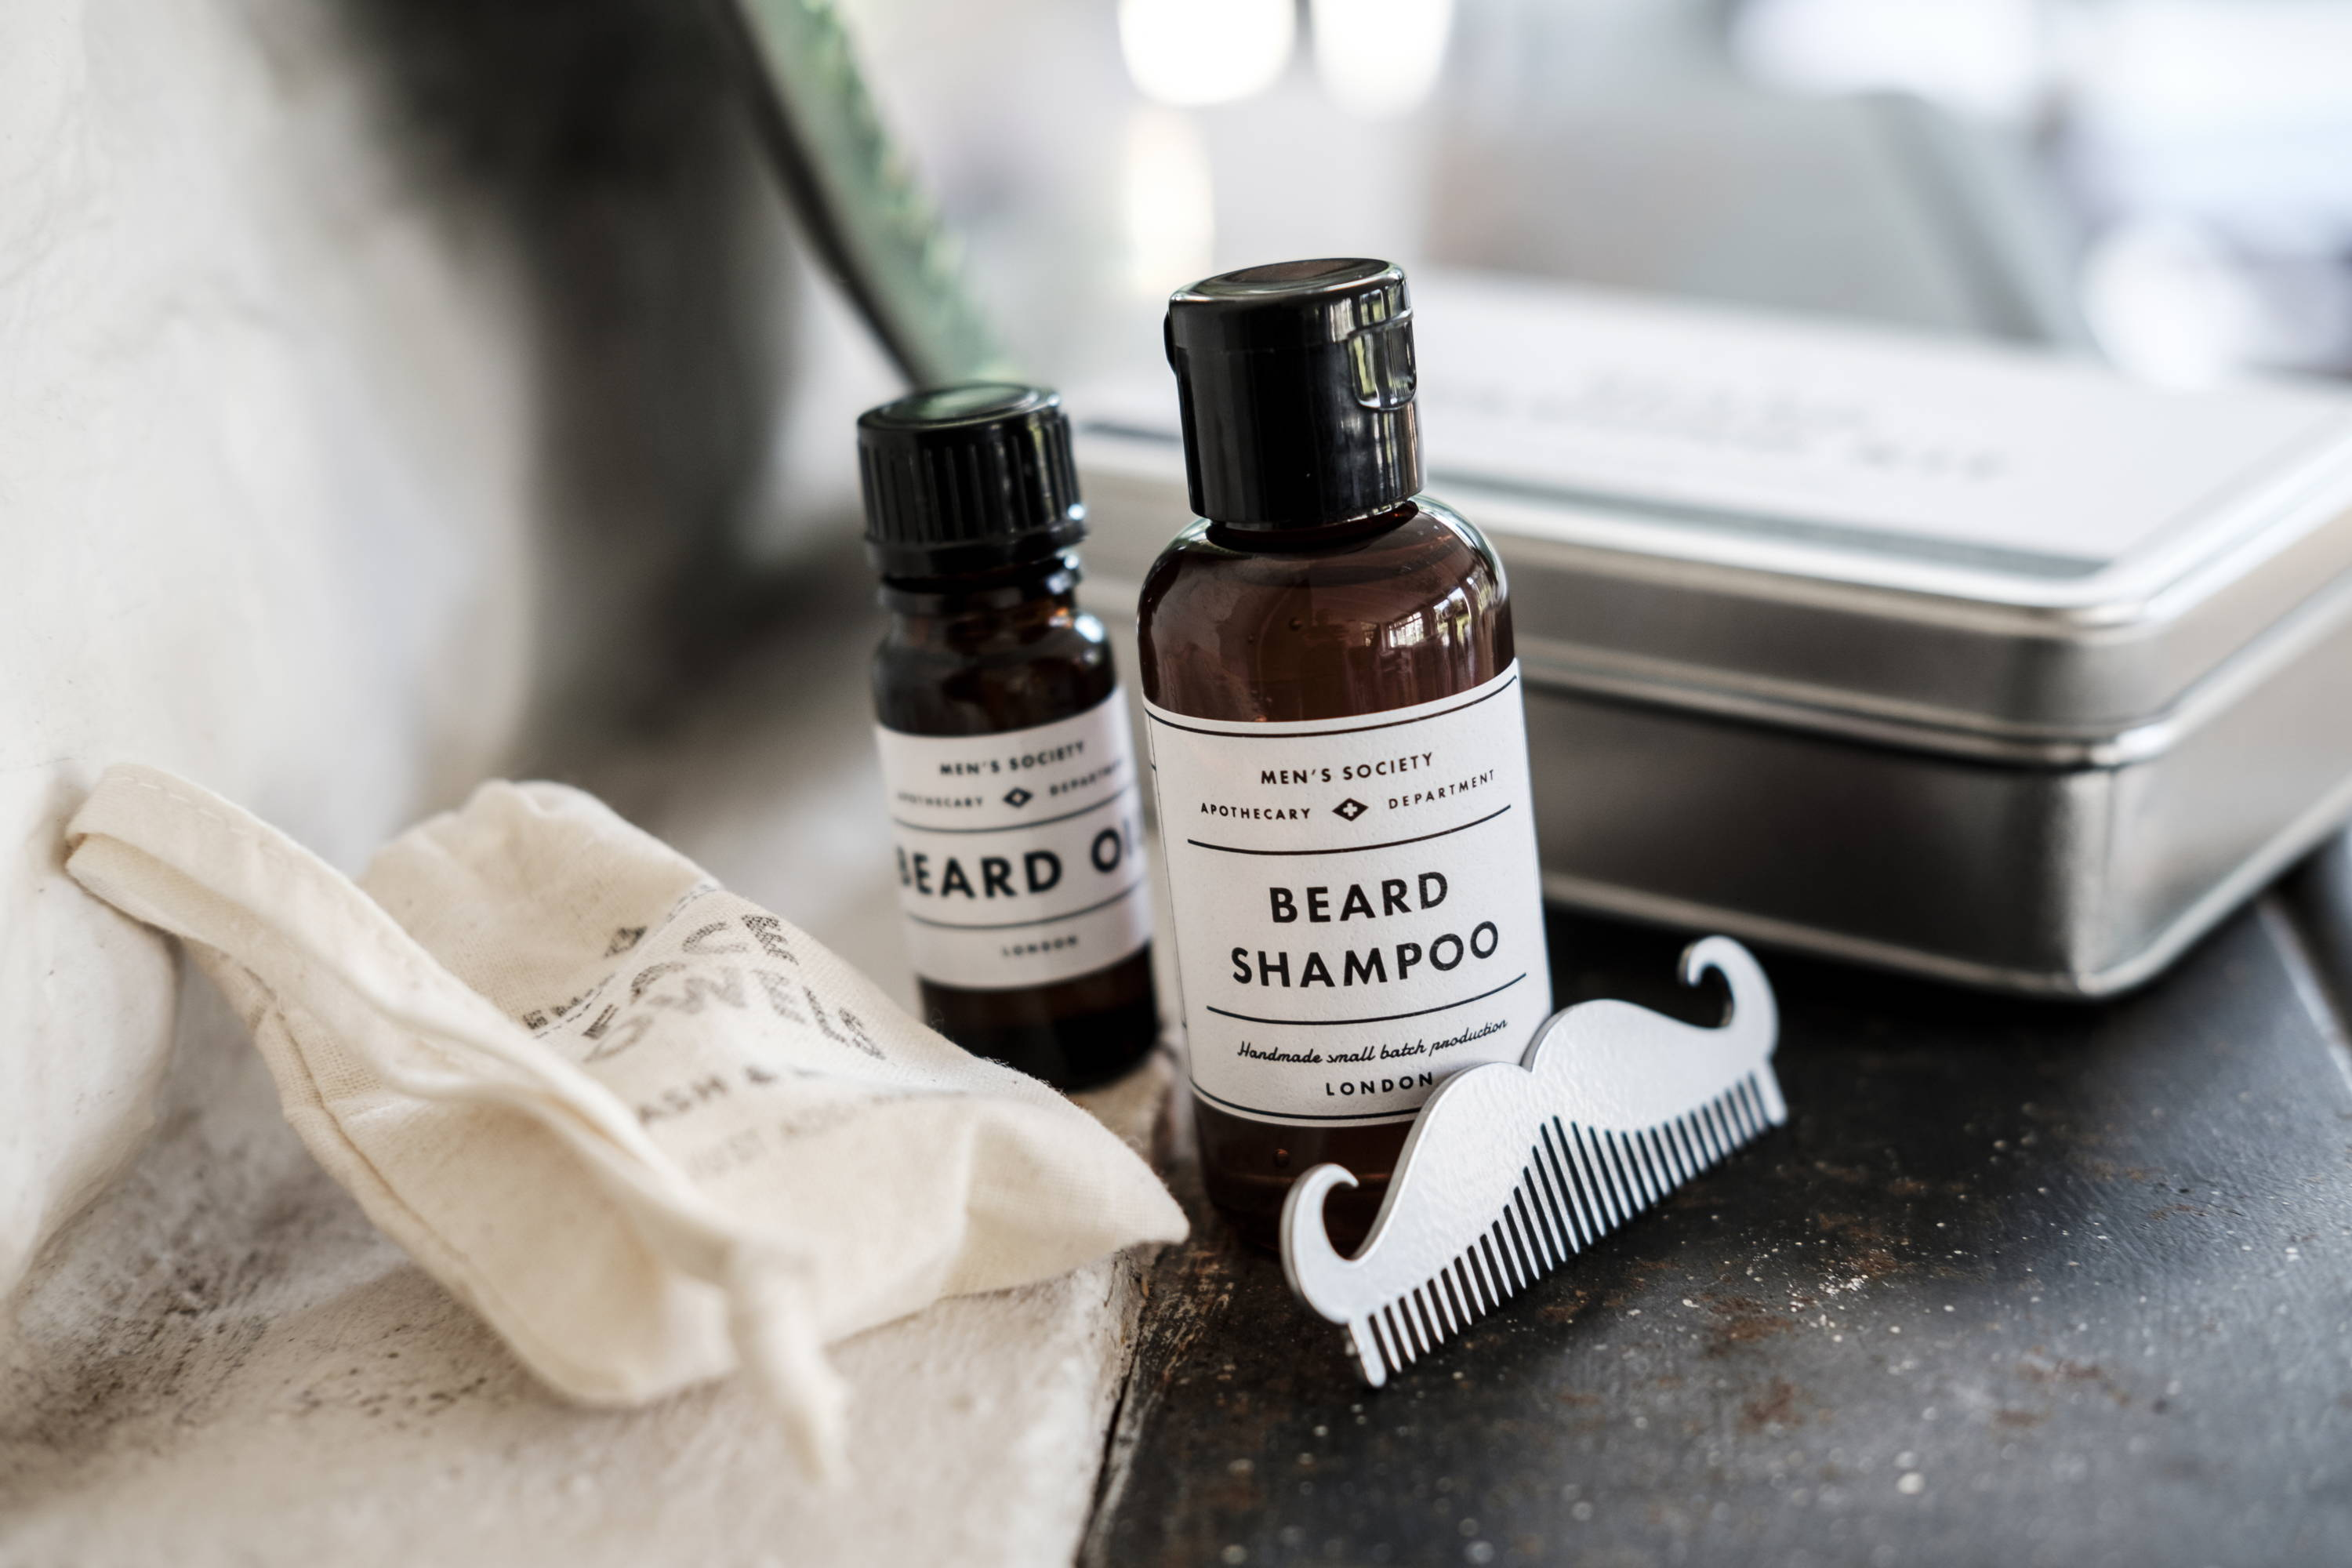 Beard Shampoo in our Beard Washing Kit